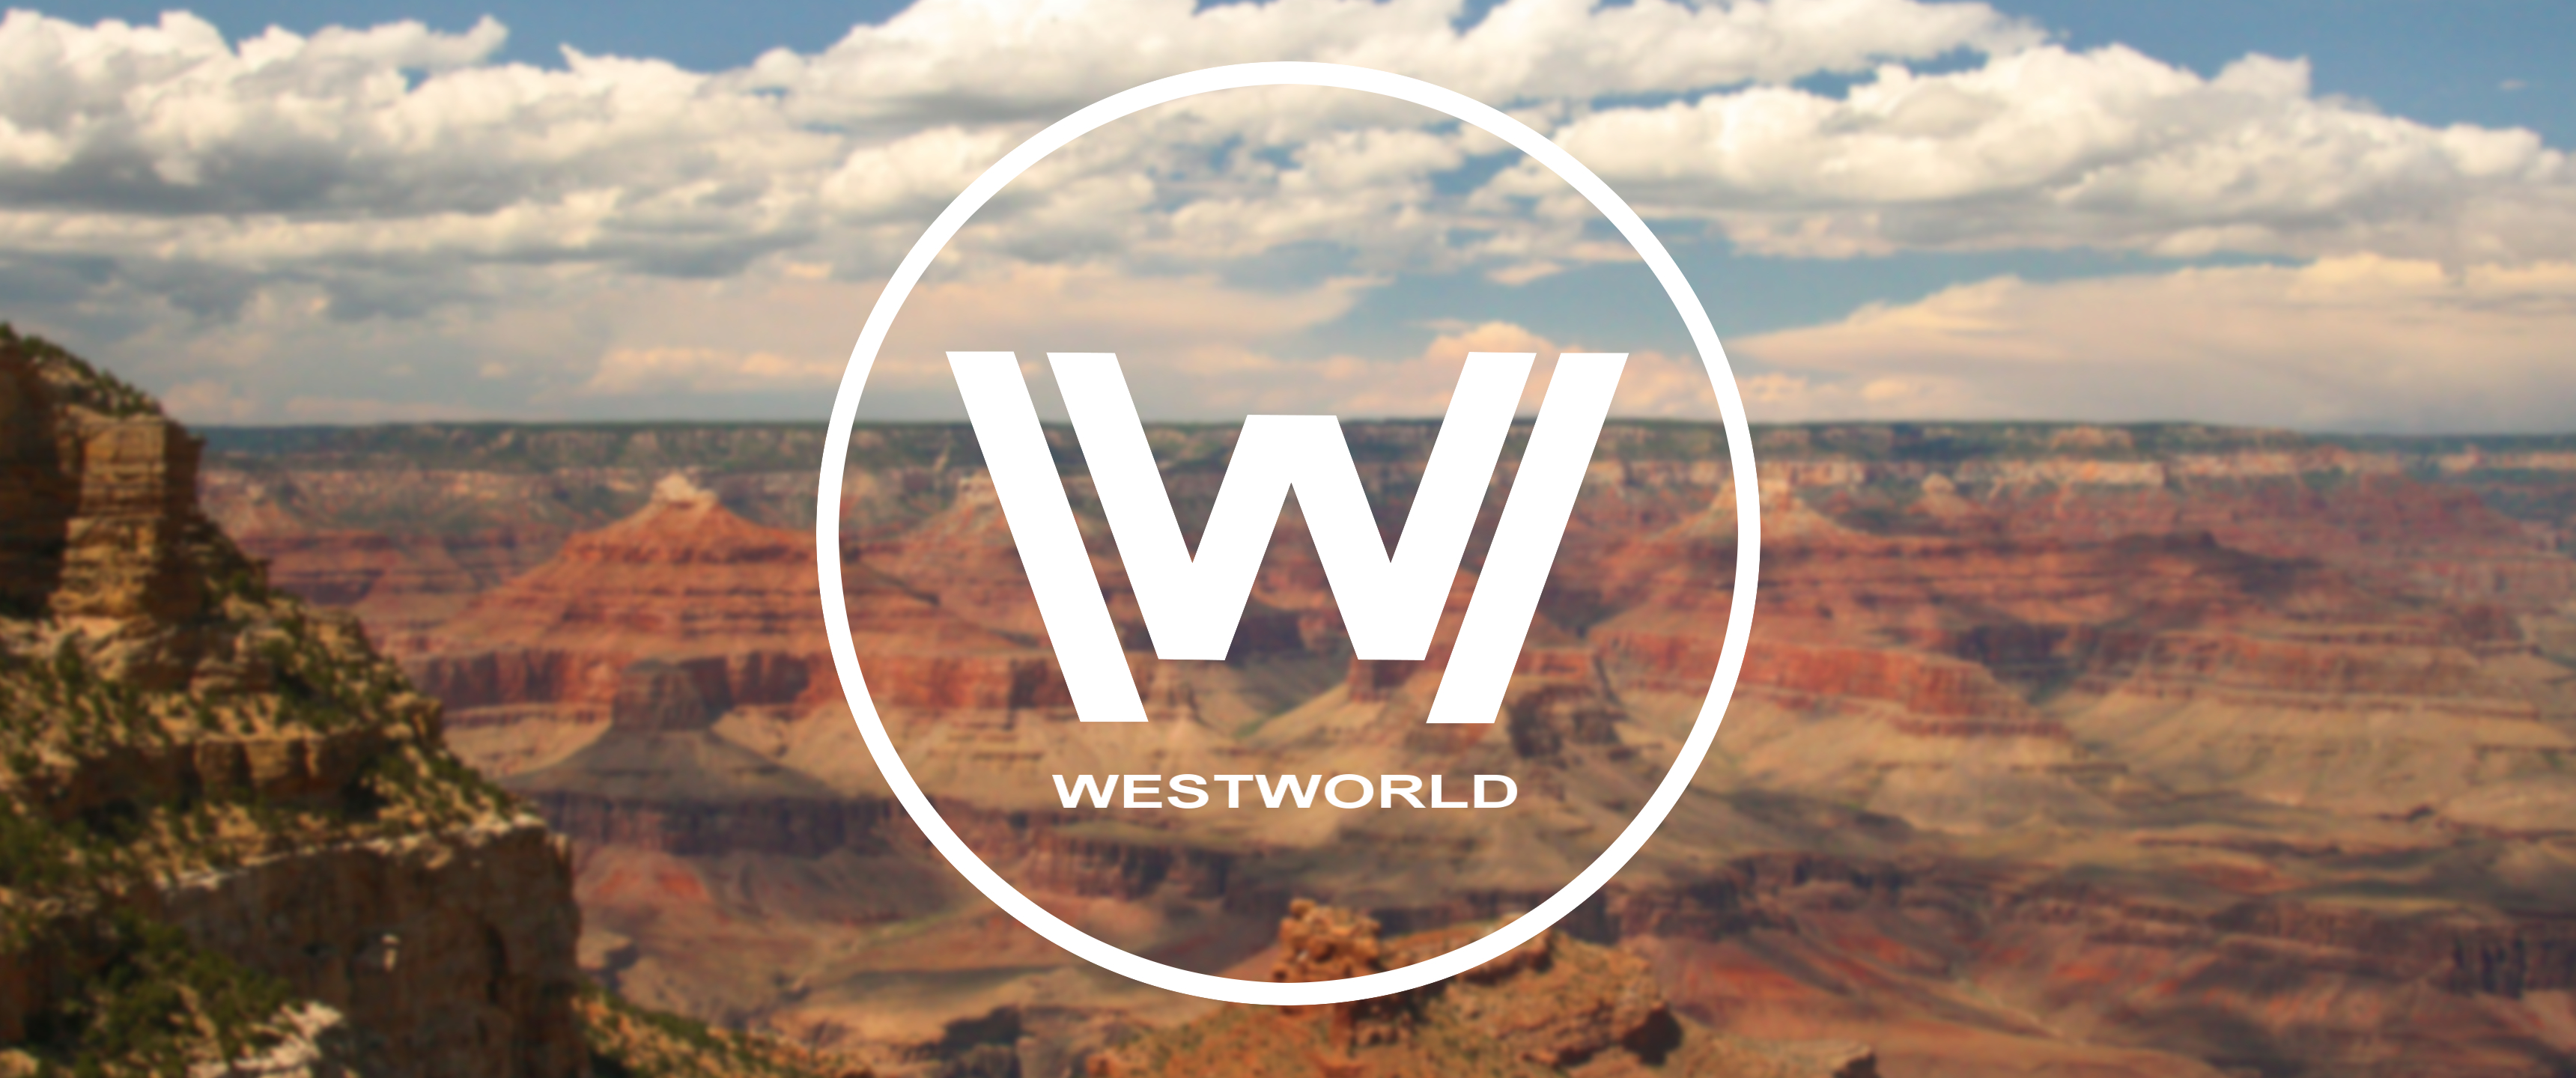 Havent seen a Westworld wallpaper for ultrawides Made a 3440x1440